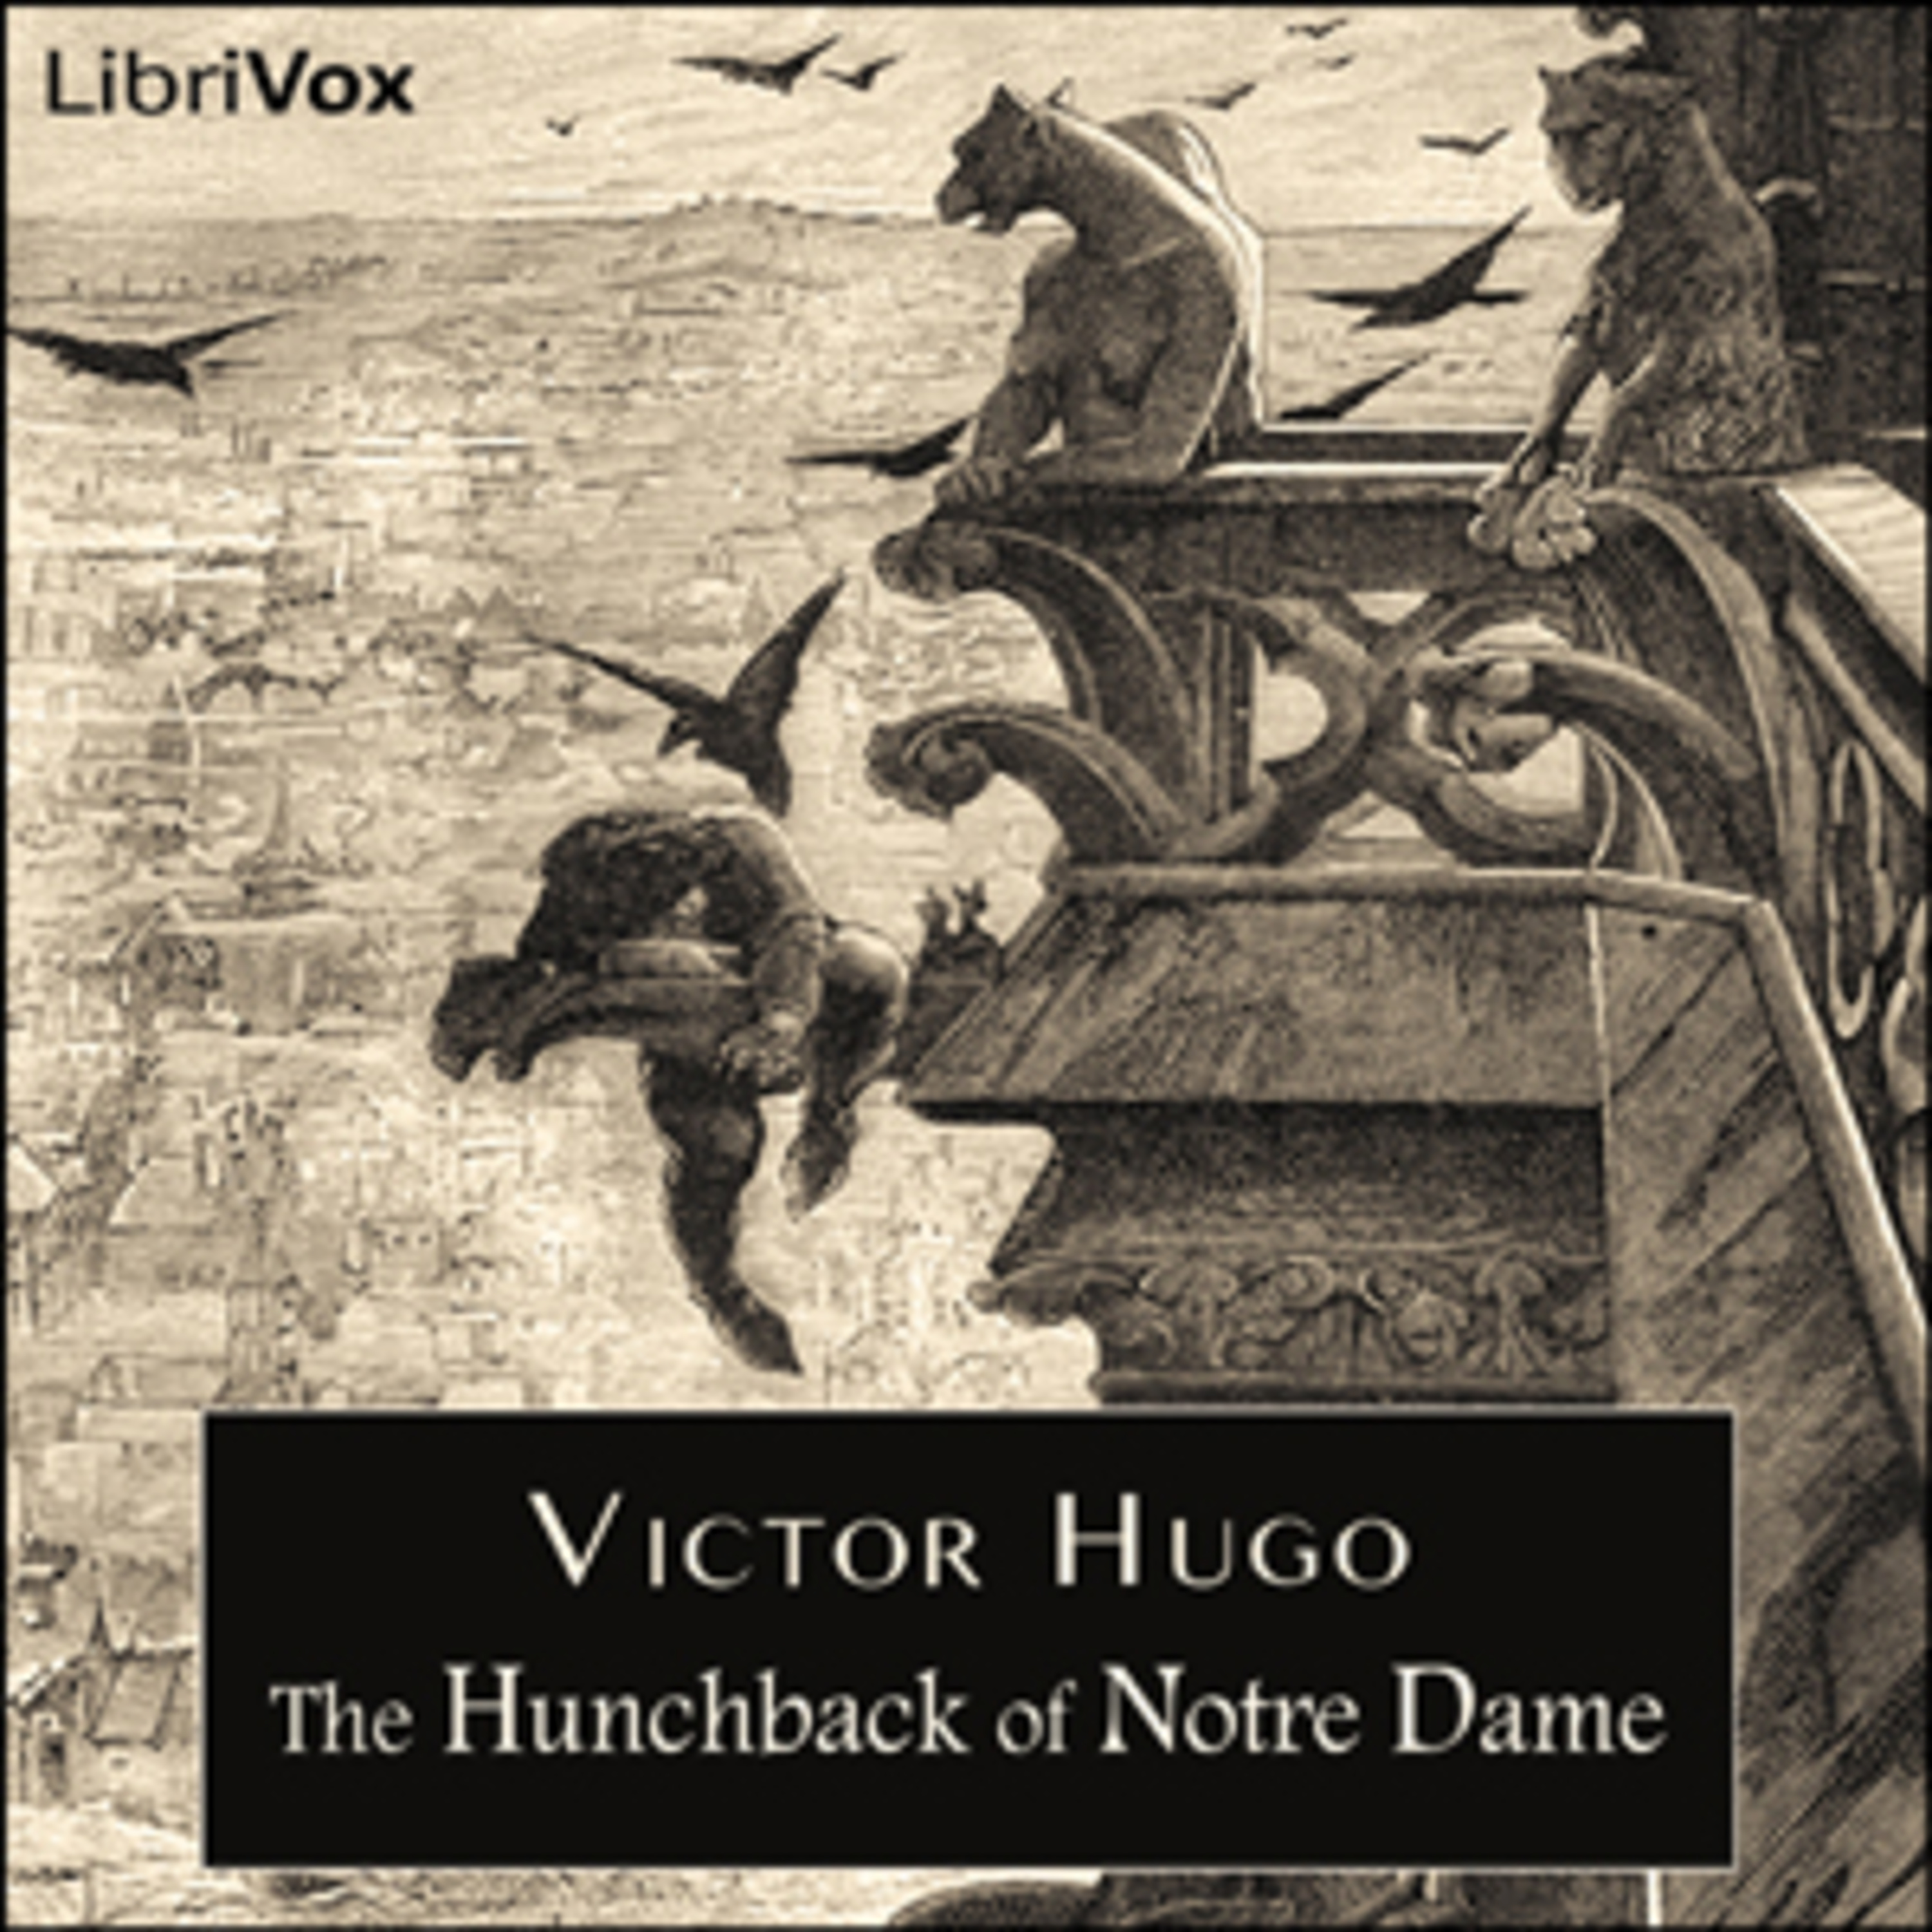 The Hunchback of Notre Dame Podcast - Victor Hugo - Book 6 - Impartial Glance at the Ancient Magistracy - Rat Hole - History of a Leavened Cake of Maize